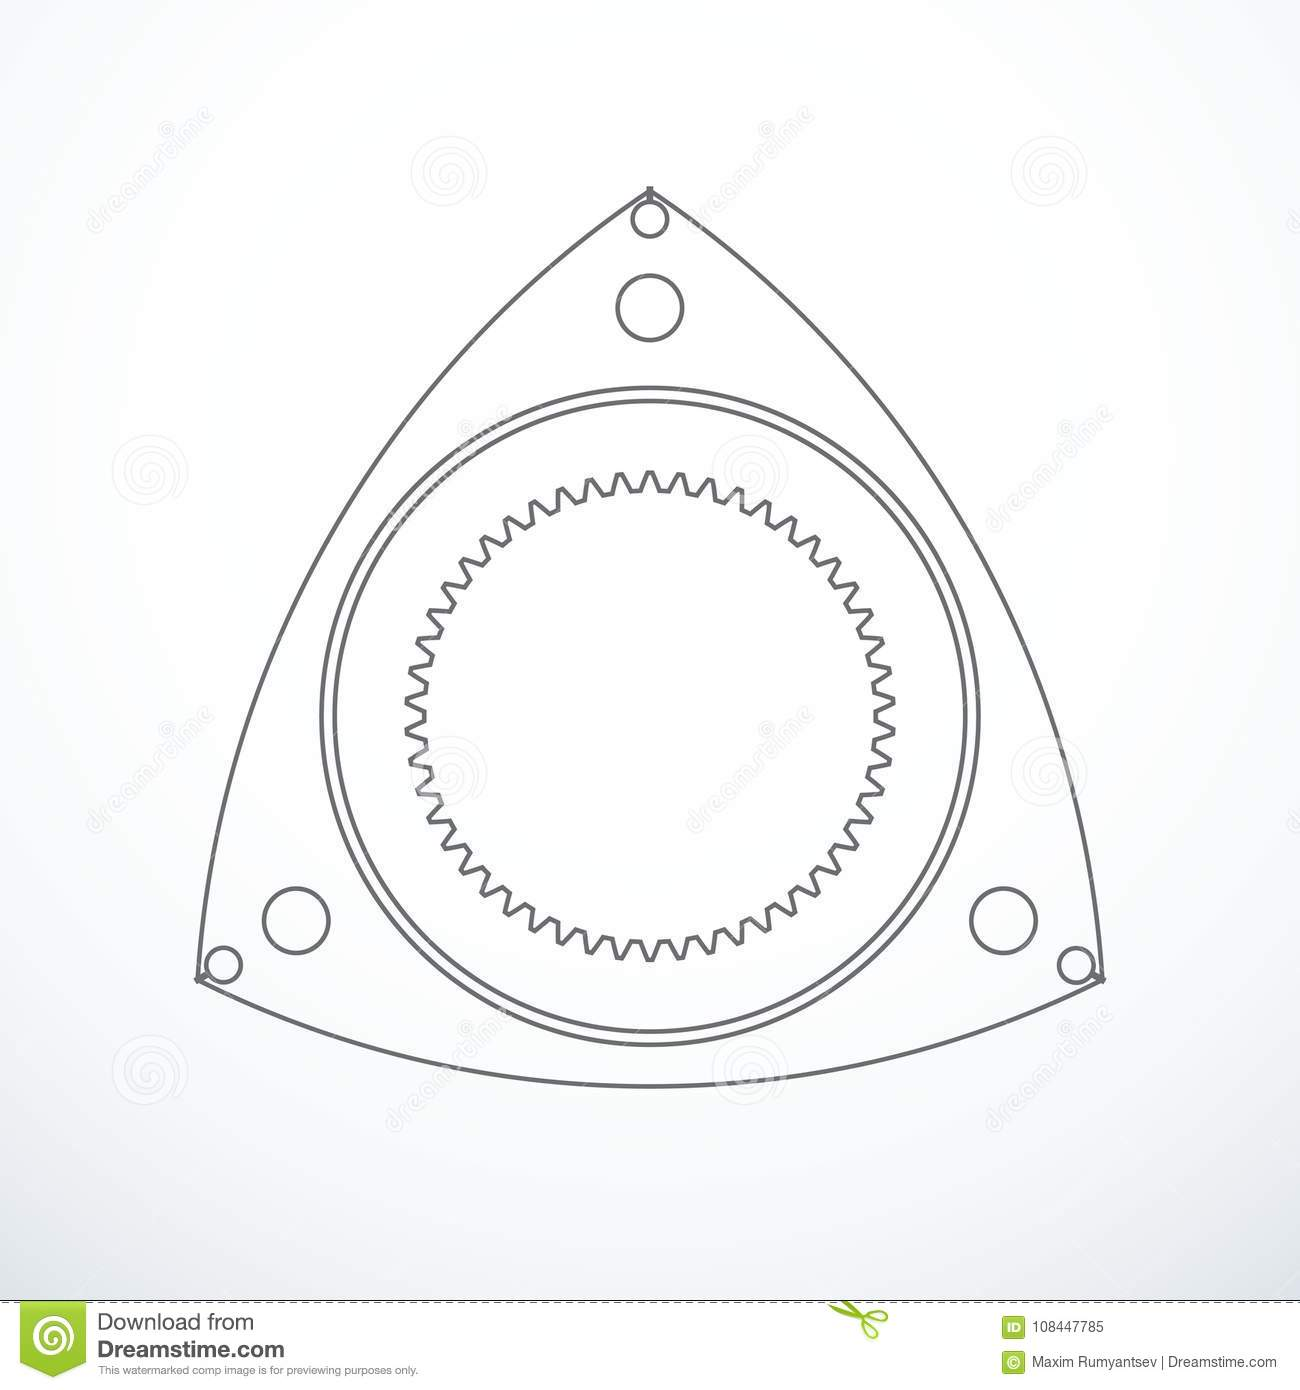 Rotor Of Rotary Wankel Engine Vector Illustration Stock Vector